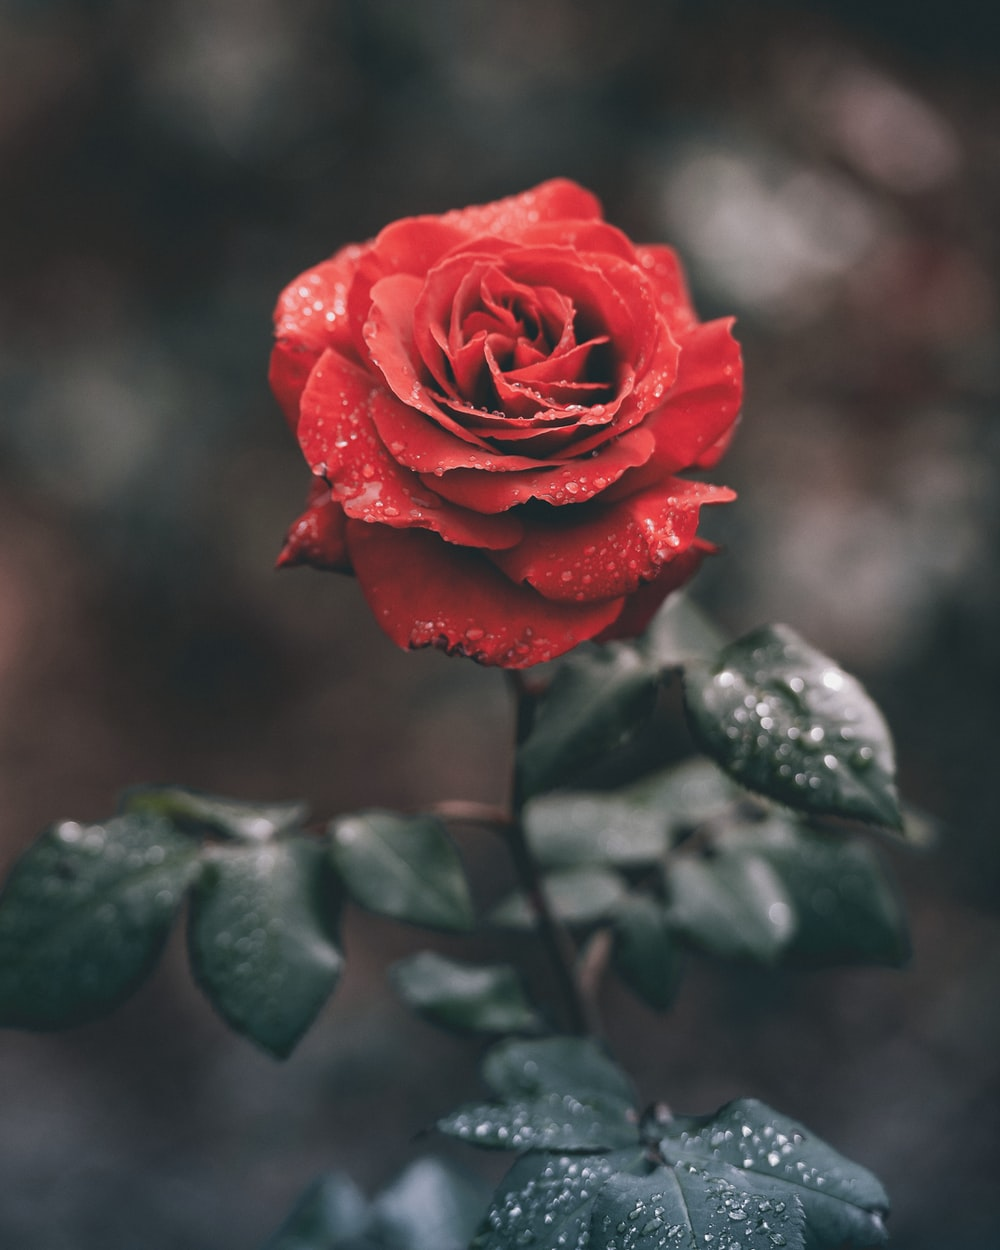 wet red rose photo by ameen fahmy ameenfahmy on unsplash